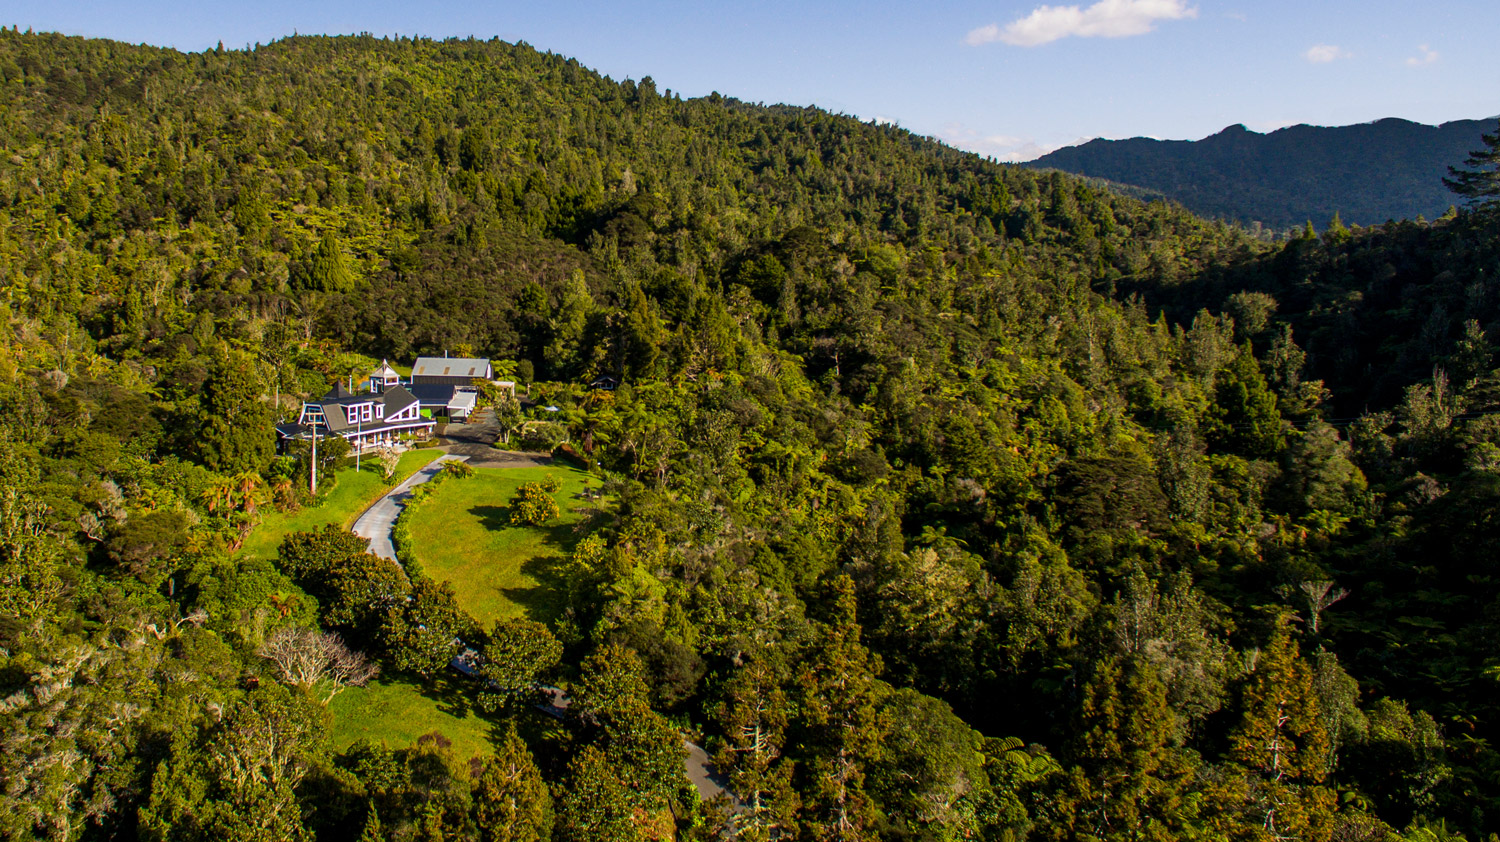 drone shot from Wairua Lodge